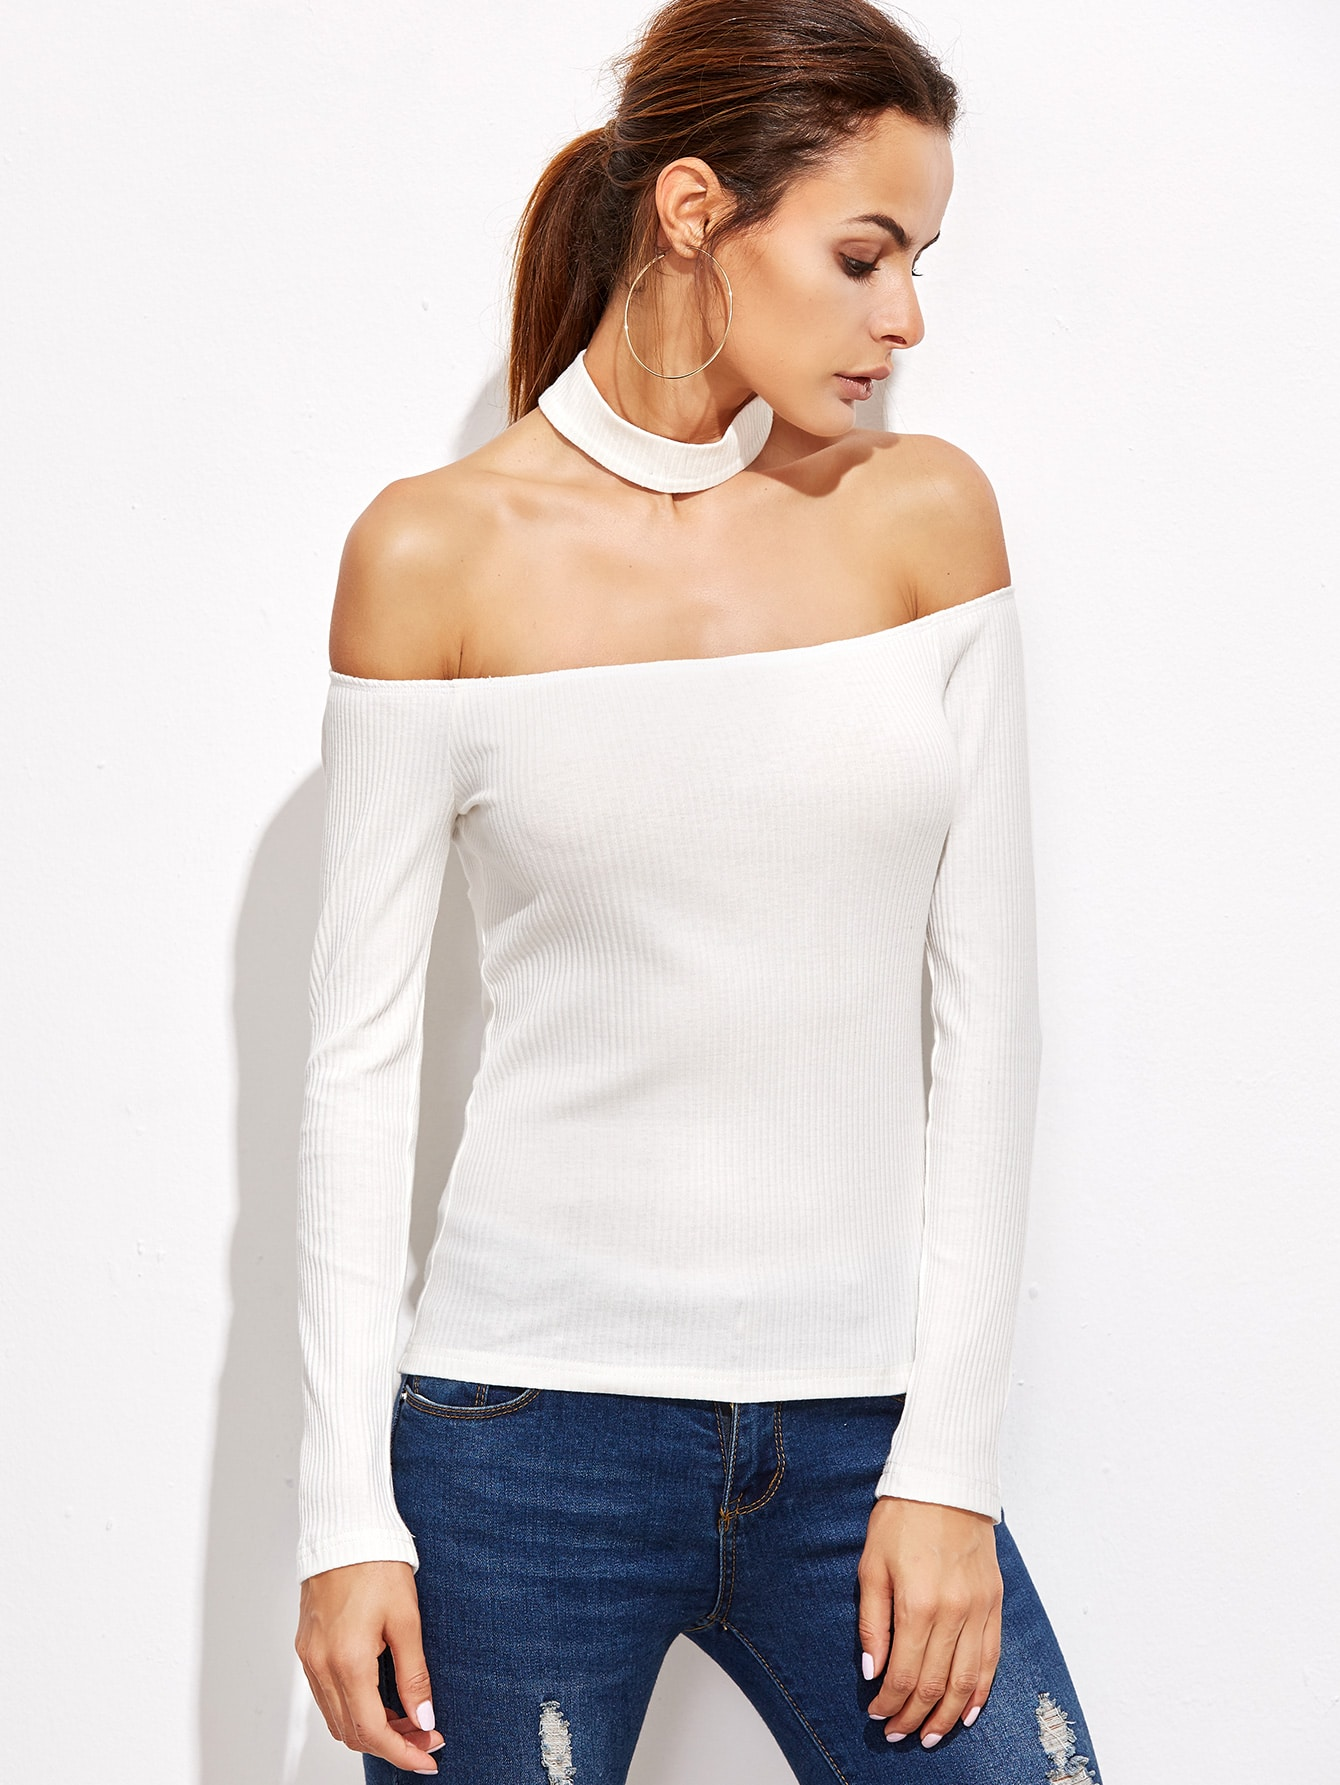 White Off The Shoulder Ribbed T-shirt With ChokerWhite Off The Shoulder Ribbed T-shirt With Choker<br><br>color: White<br>size: L,M,S,XS